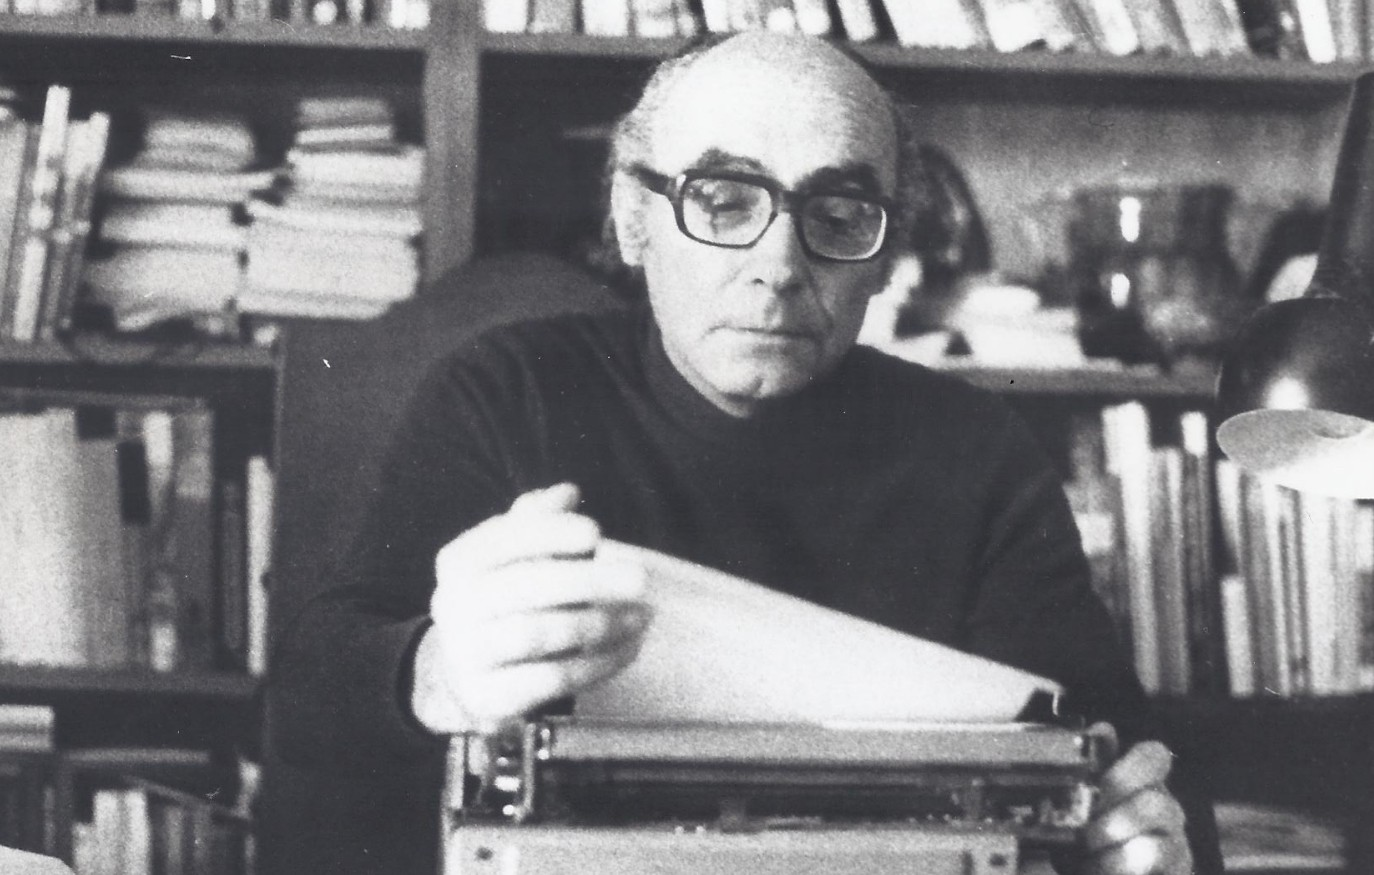 José Saramago, 70s ©FJS Archive/Reserved Rights